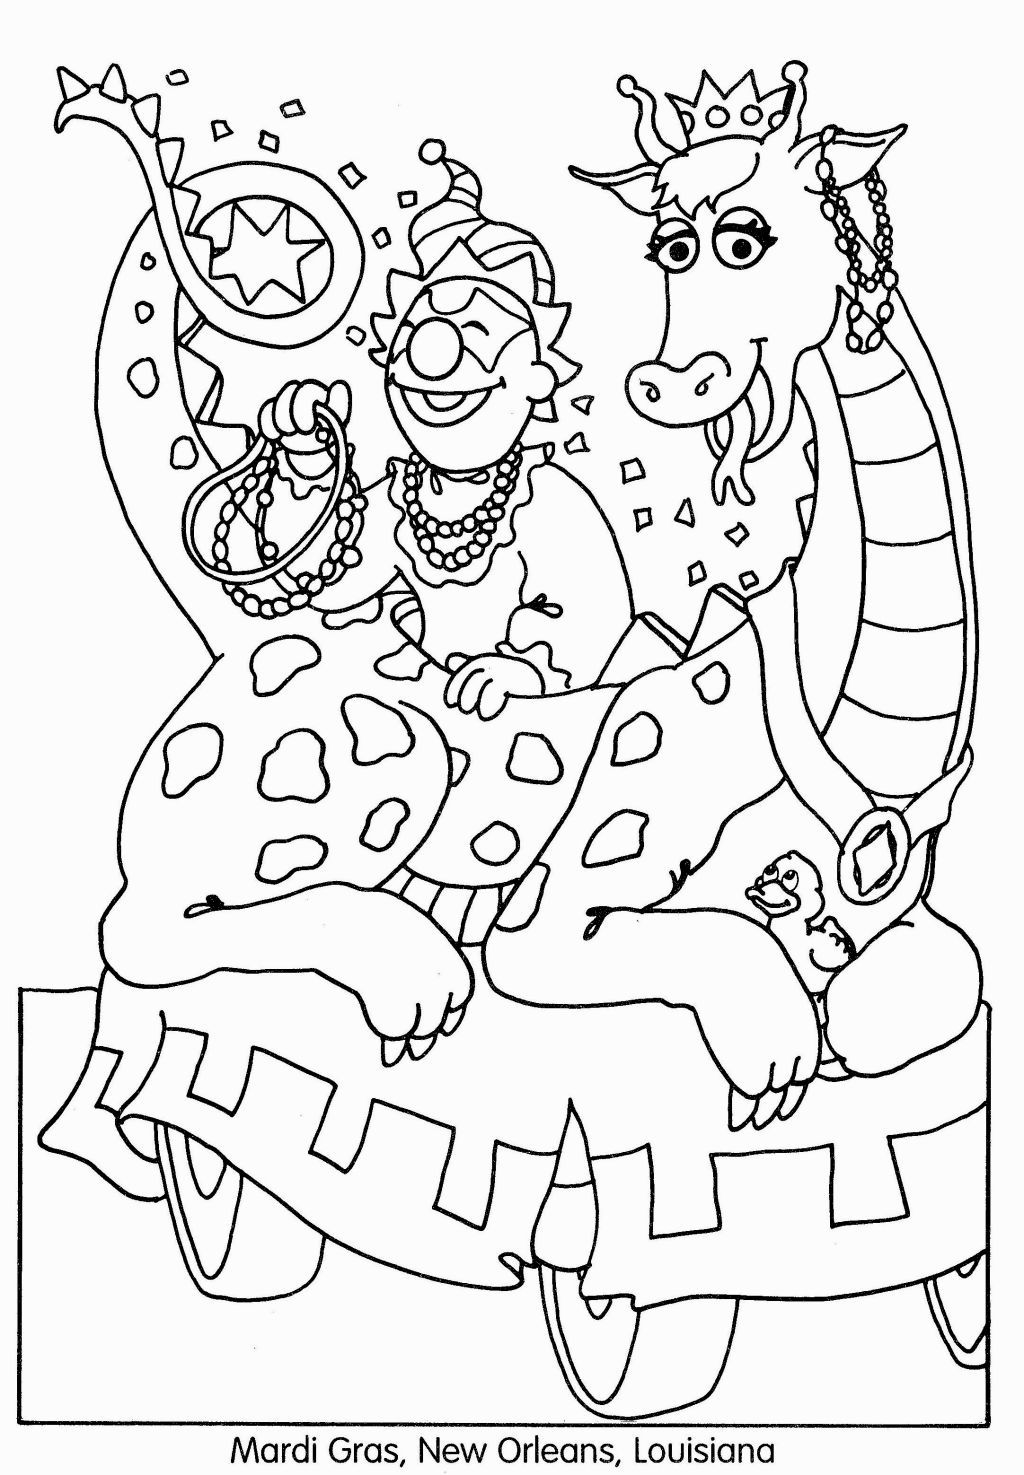 mardi gras coloring sheets free printable mardi gras coloring pages mardi gras coloring sheets